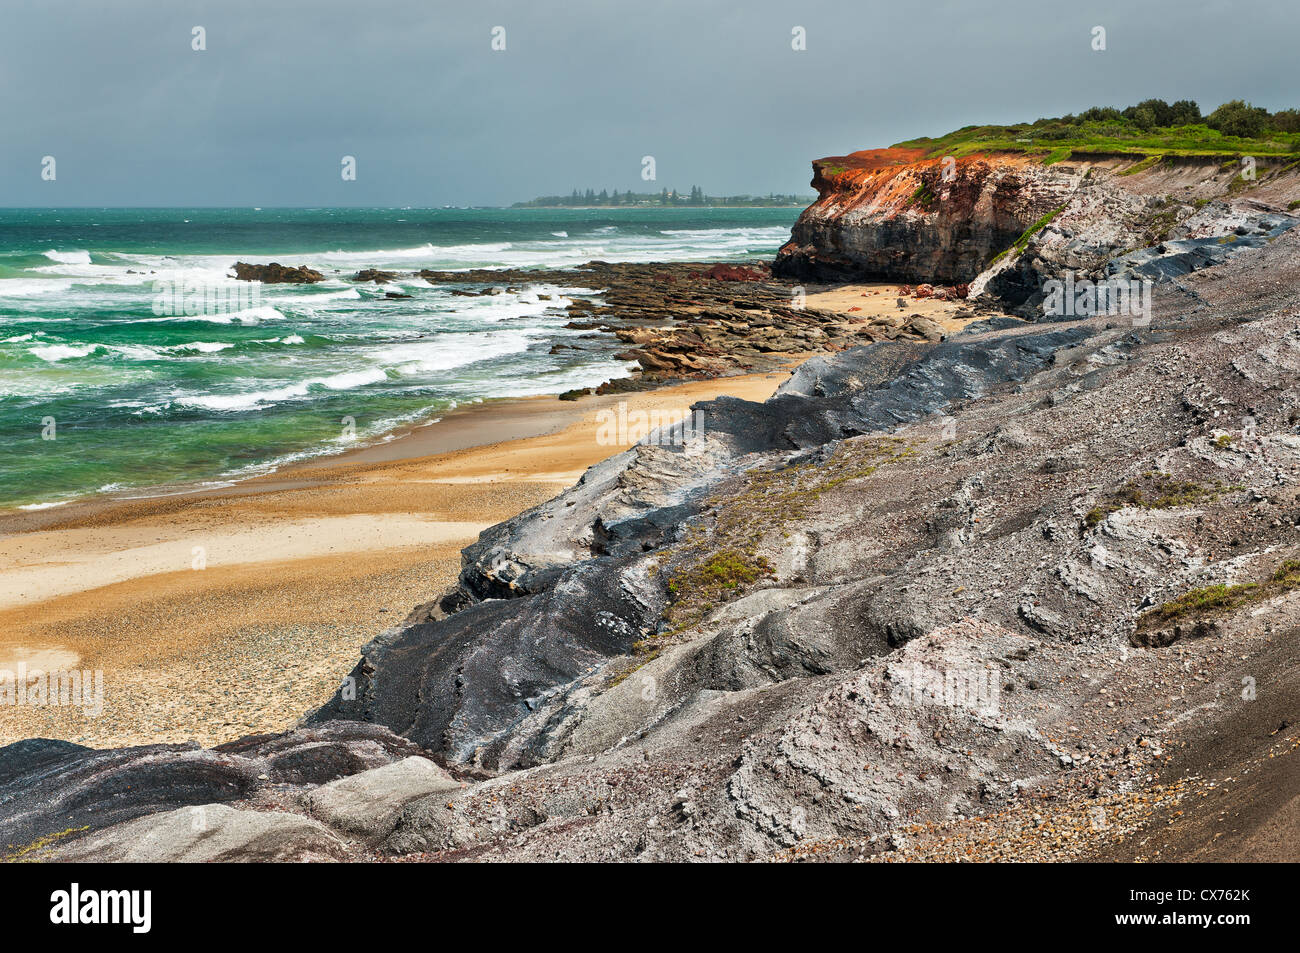 Rugged Red Cliff at Yuraygir National Park. - Stock Image